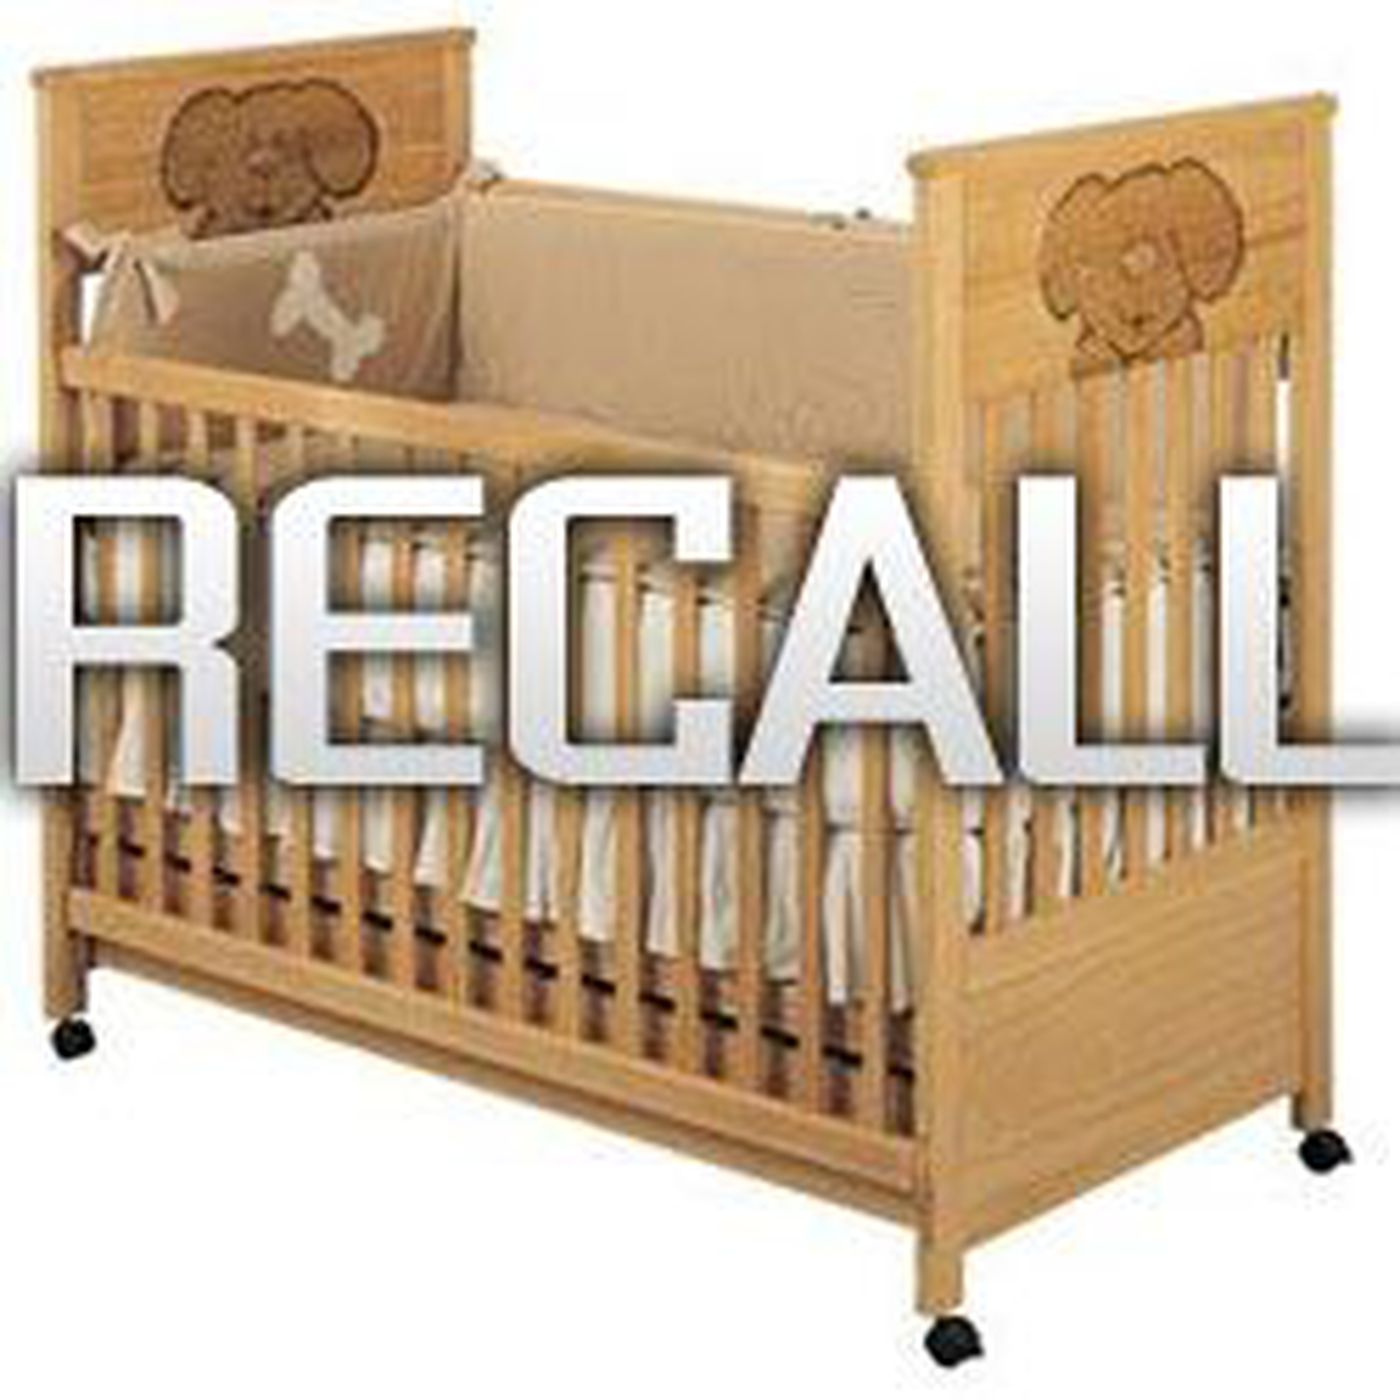 1 Million Simplicity Graco Baby Cribs Recalled After 3 Infant Deaths